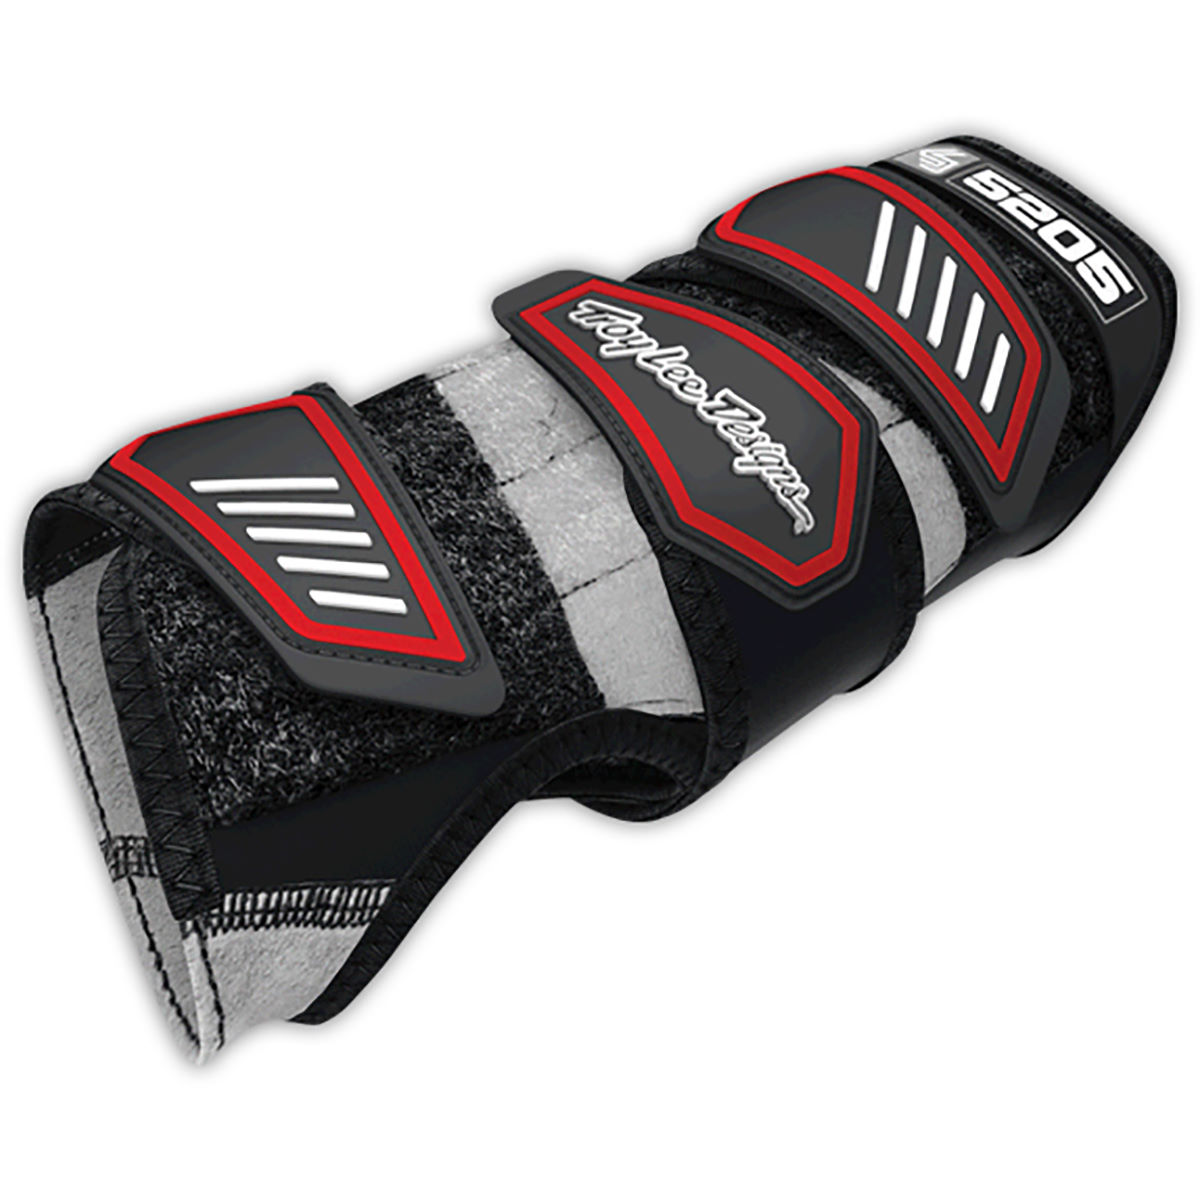 Troy Lee Designs WS 5205 Wrist Support - S Black | Body Armour